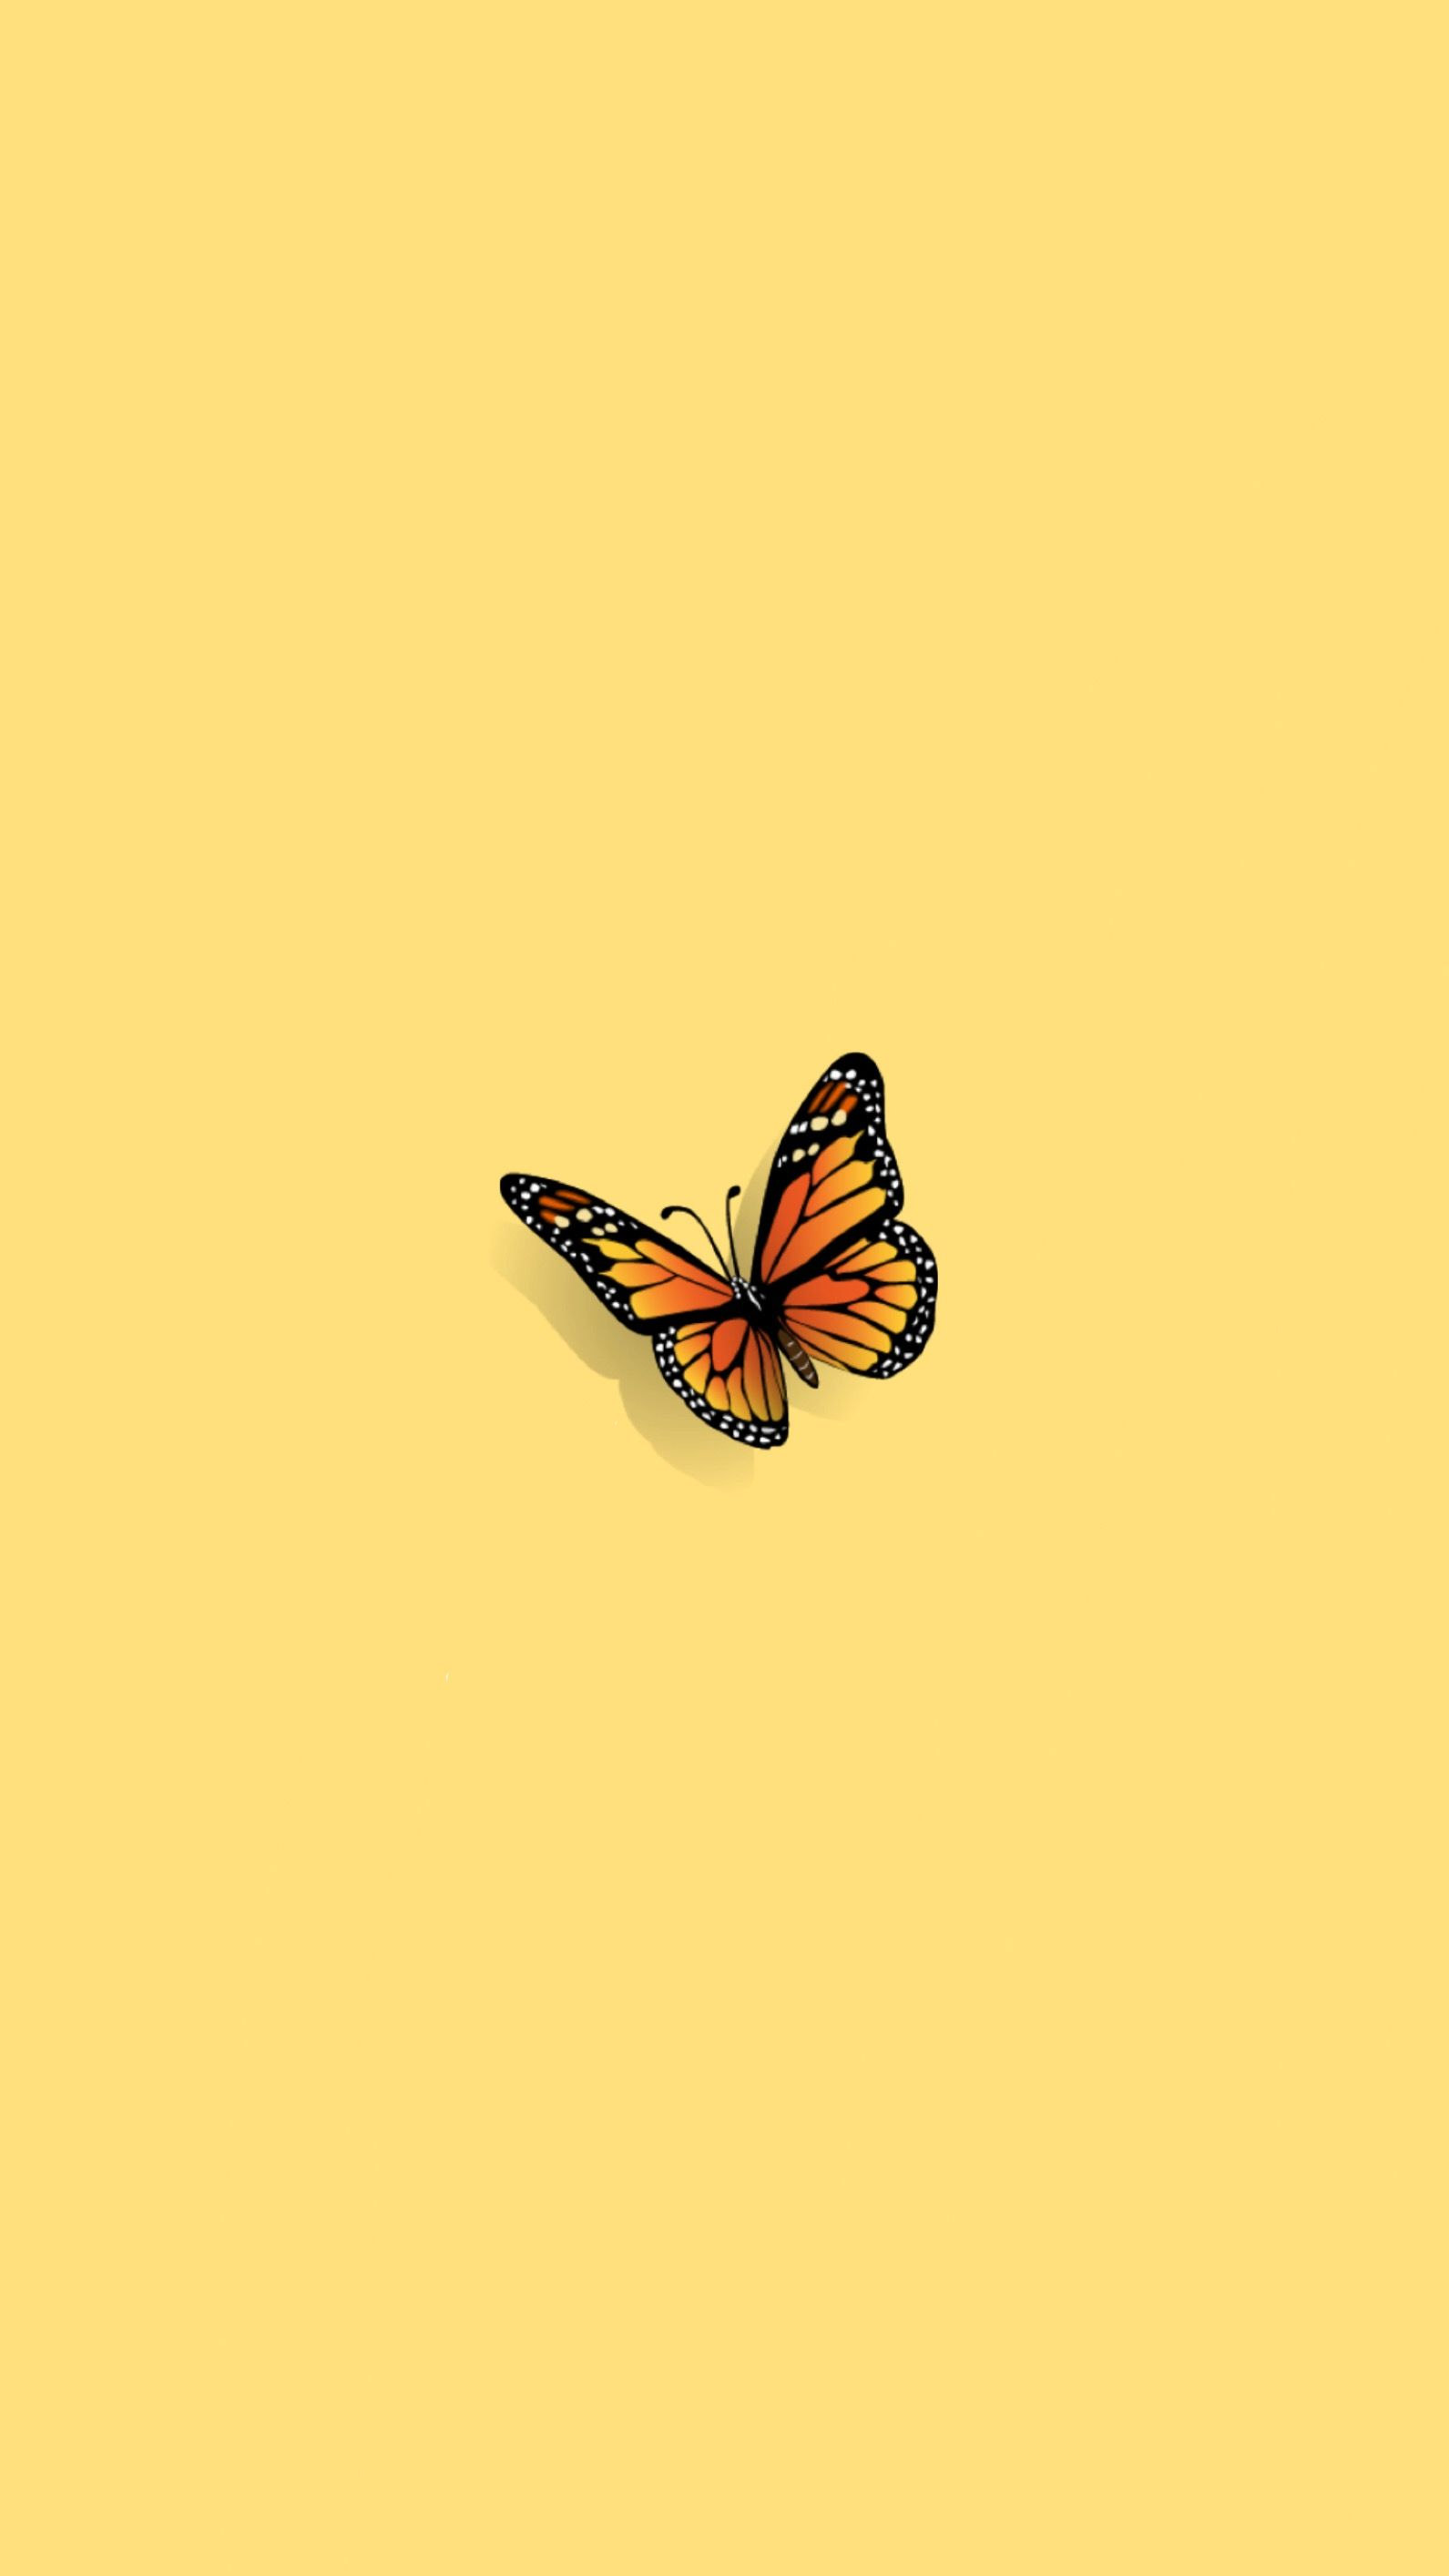 Aesthetic Butterfly Wallpaper Laptop : aesthetic, butterfly, wallpaper, laptop, Aesthetic, Butterfly, Wallpaper, Laptop